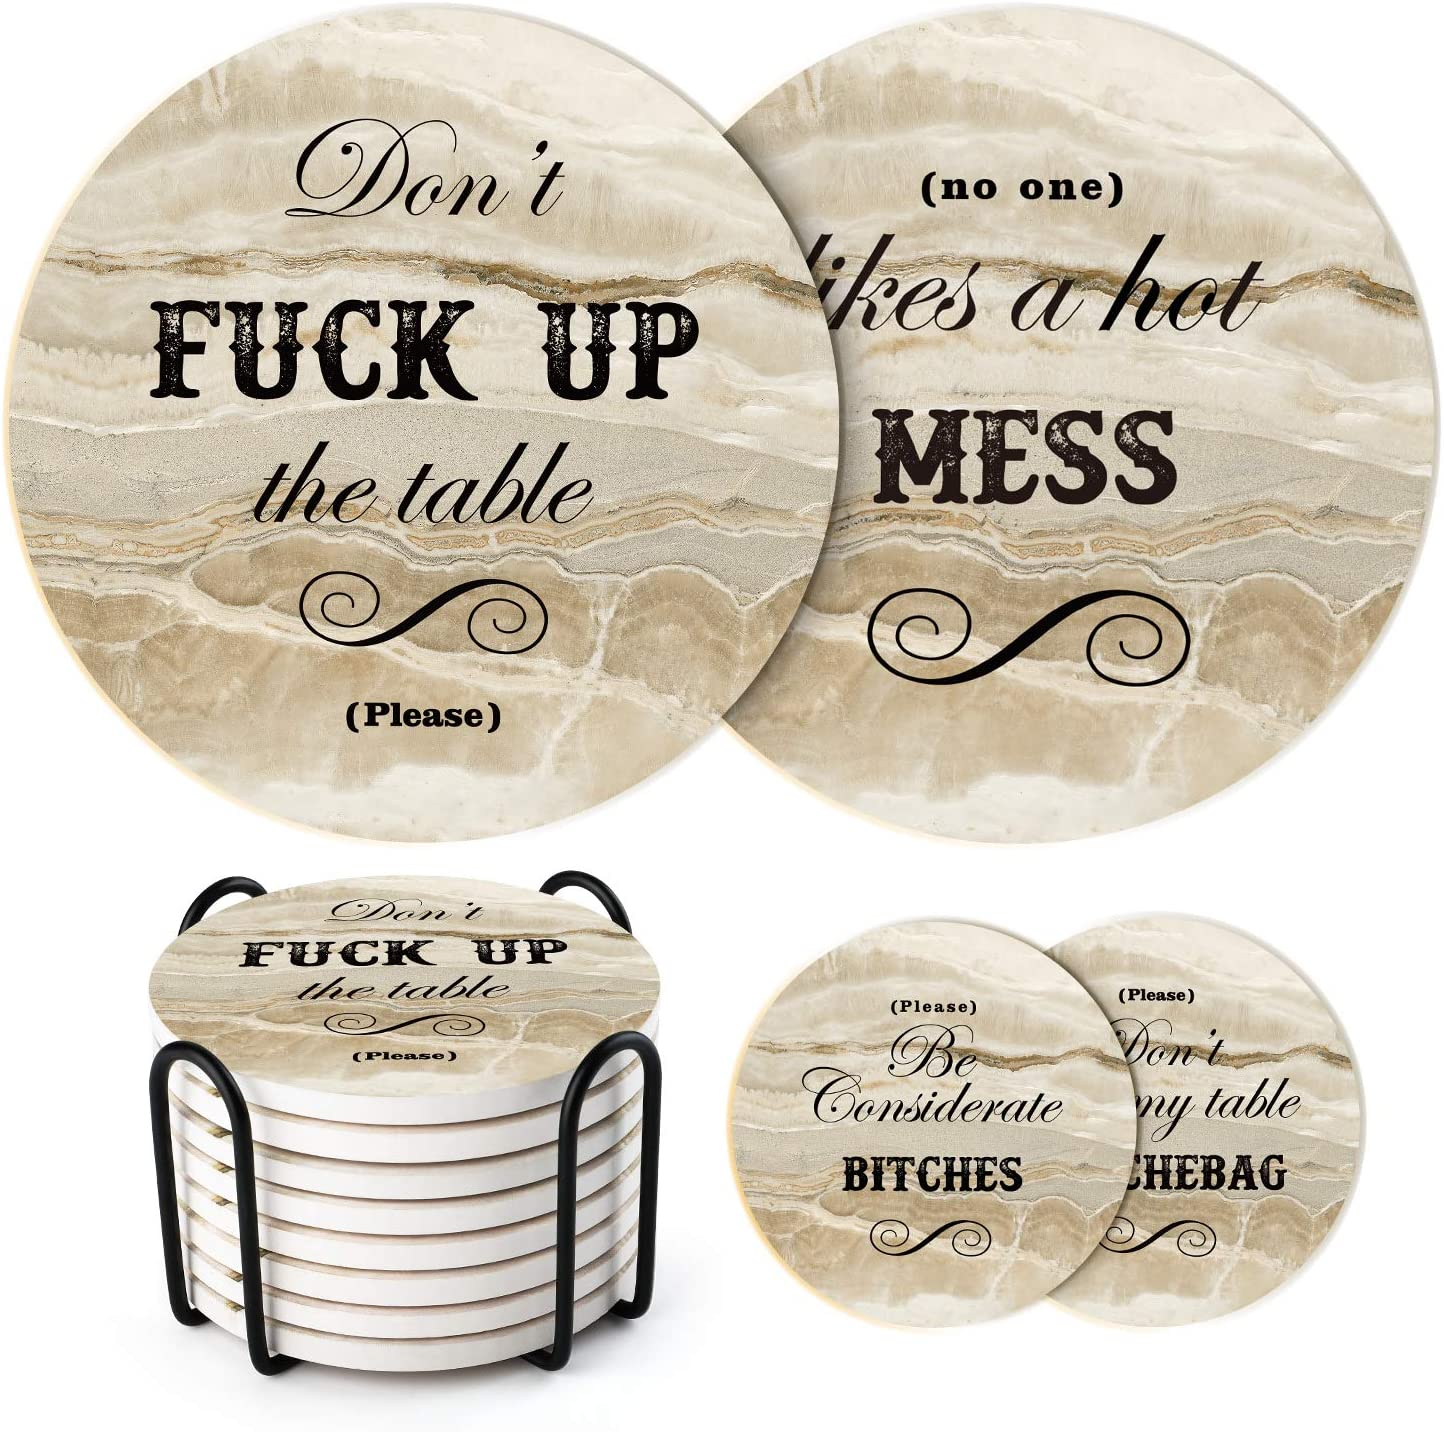 LIFVER Funny Coasters for Drinks Absorbent with Holder,8 Set Coasters with Cork Base, Ceramic Marble Style Drink Coaster with 4 Sayings for Wooden Table, Bar, Housewarming Gifts